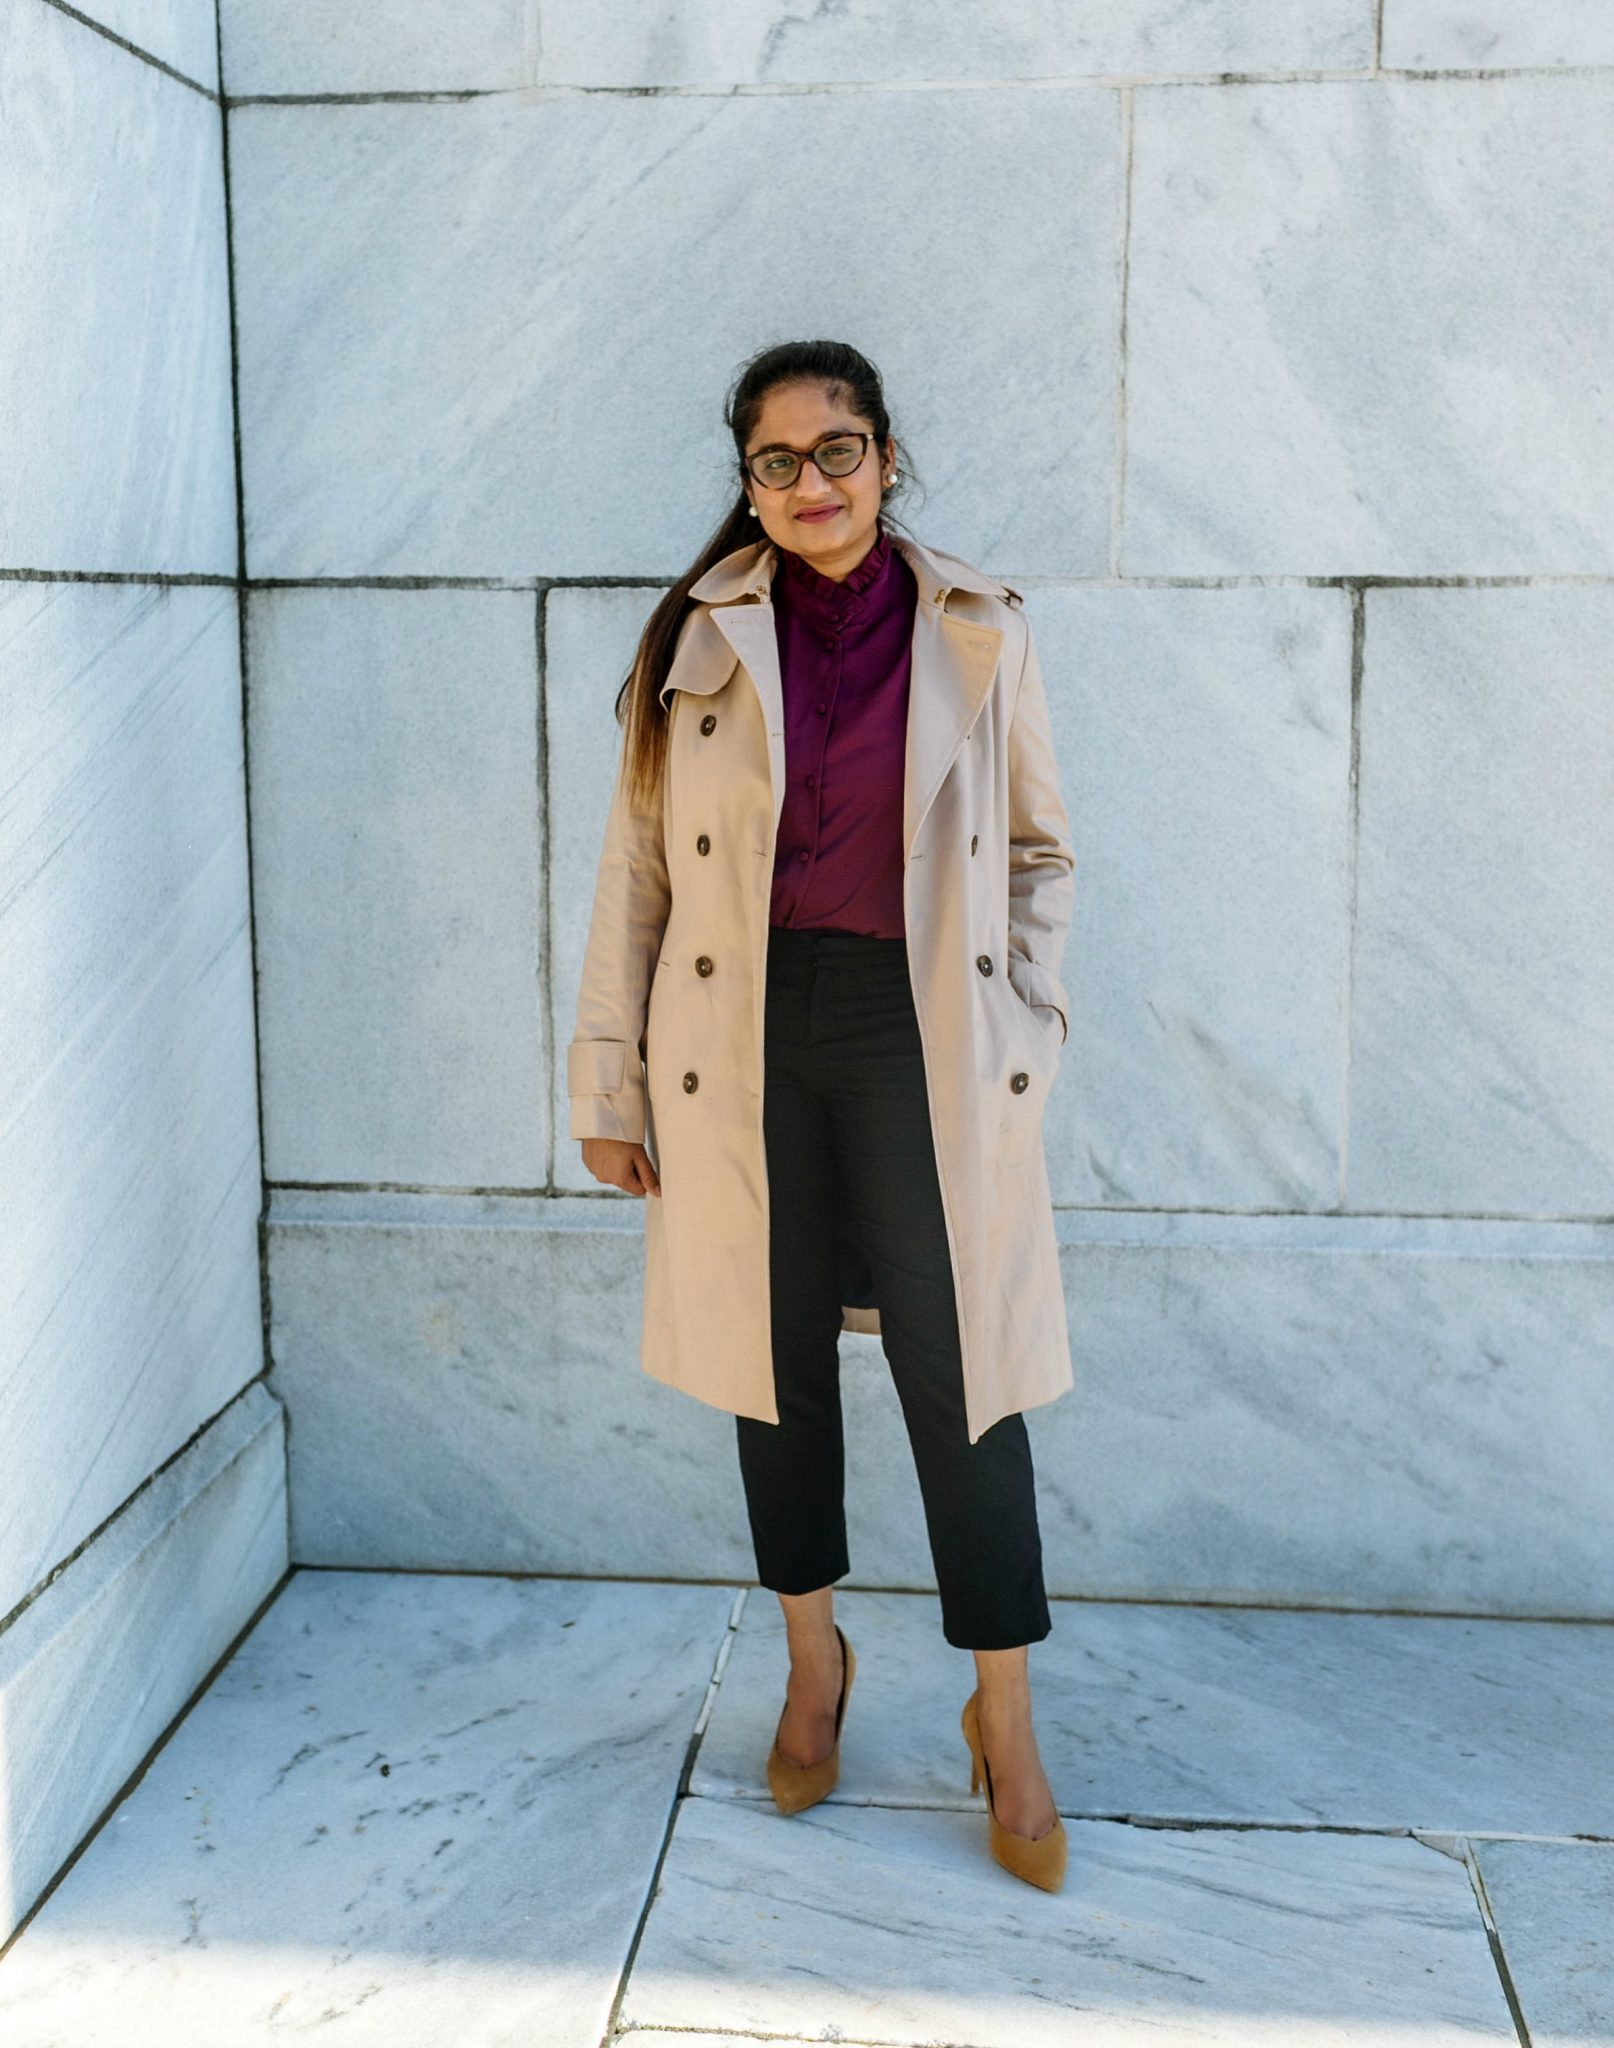 wearing brooks brothers Cotton Twill Trench Coat | 20 Outfit Fall colorful capsule wardrobe |Colorful Fall Work Outfits featured by popular US modest fashion blogger, Dreaming Loud